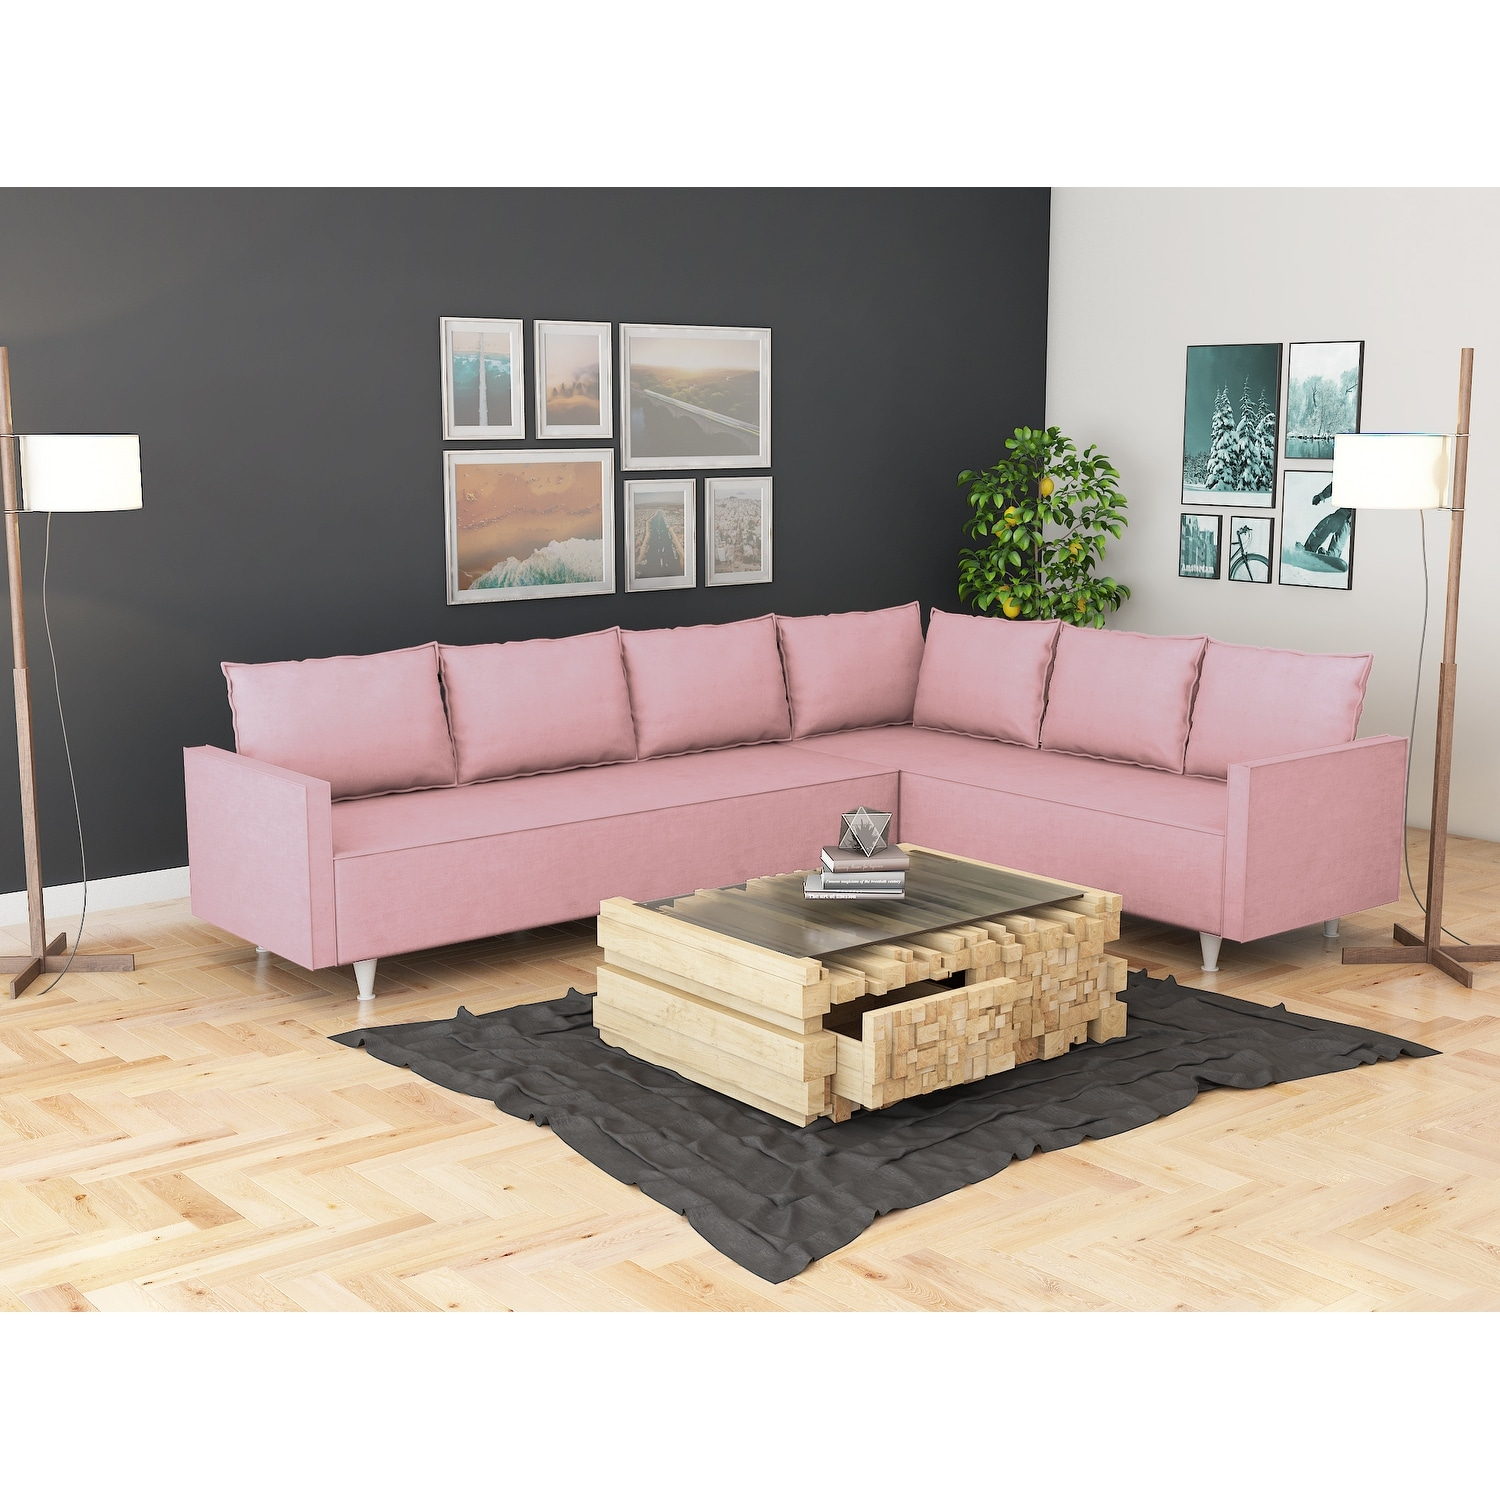 Picture of: Modern Metal Frame Upholstered Sectional Sofa Overstock 31748391